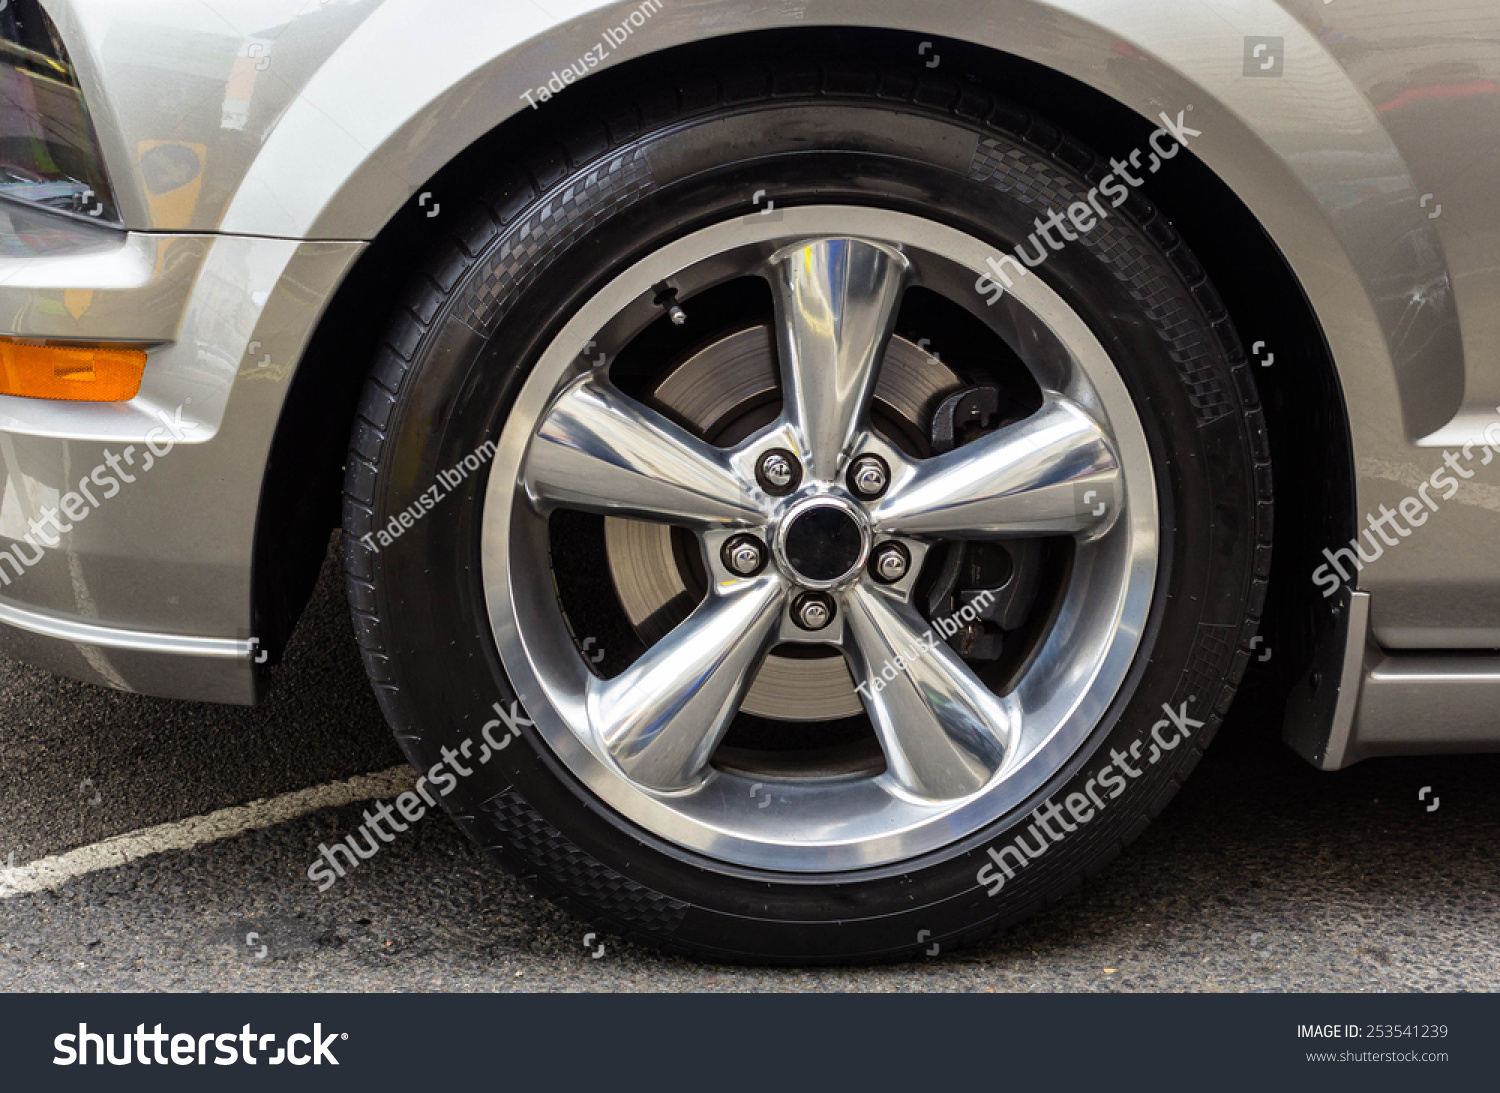 Sports Car Wheels Low Profile Tires Stock Photo Edit Now 253541239